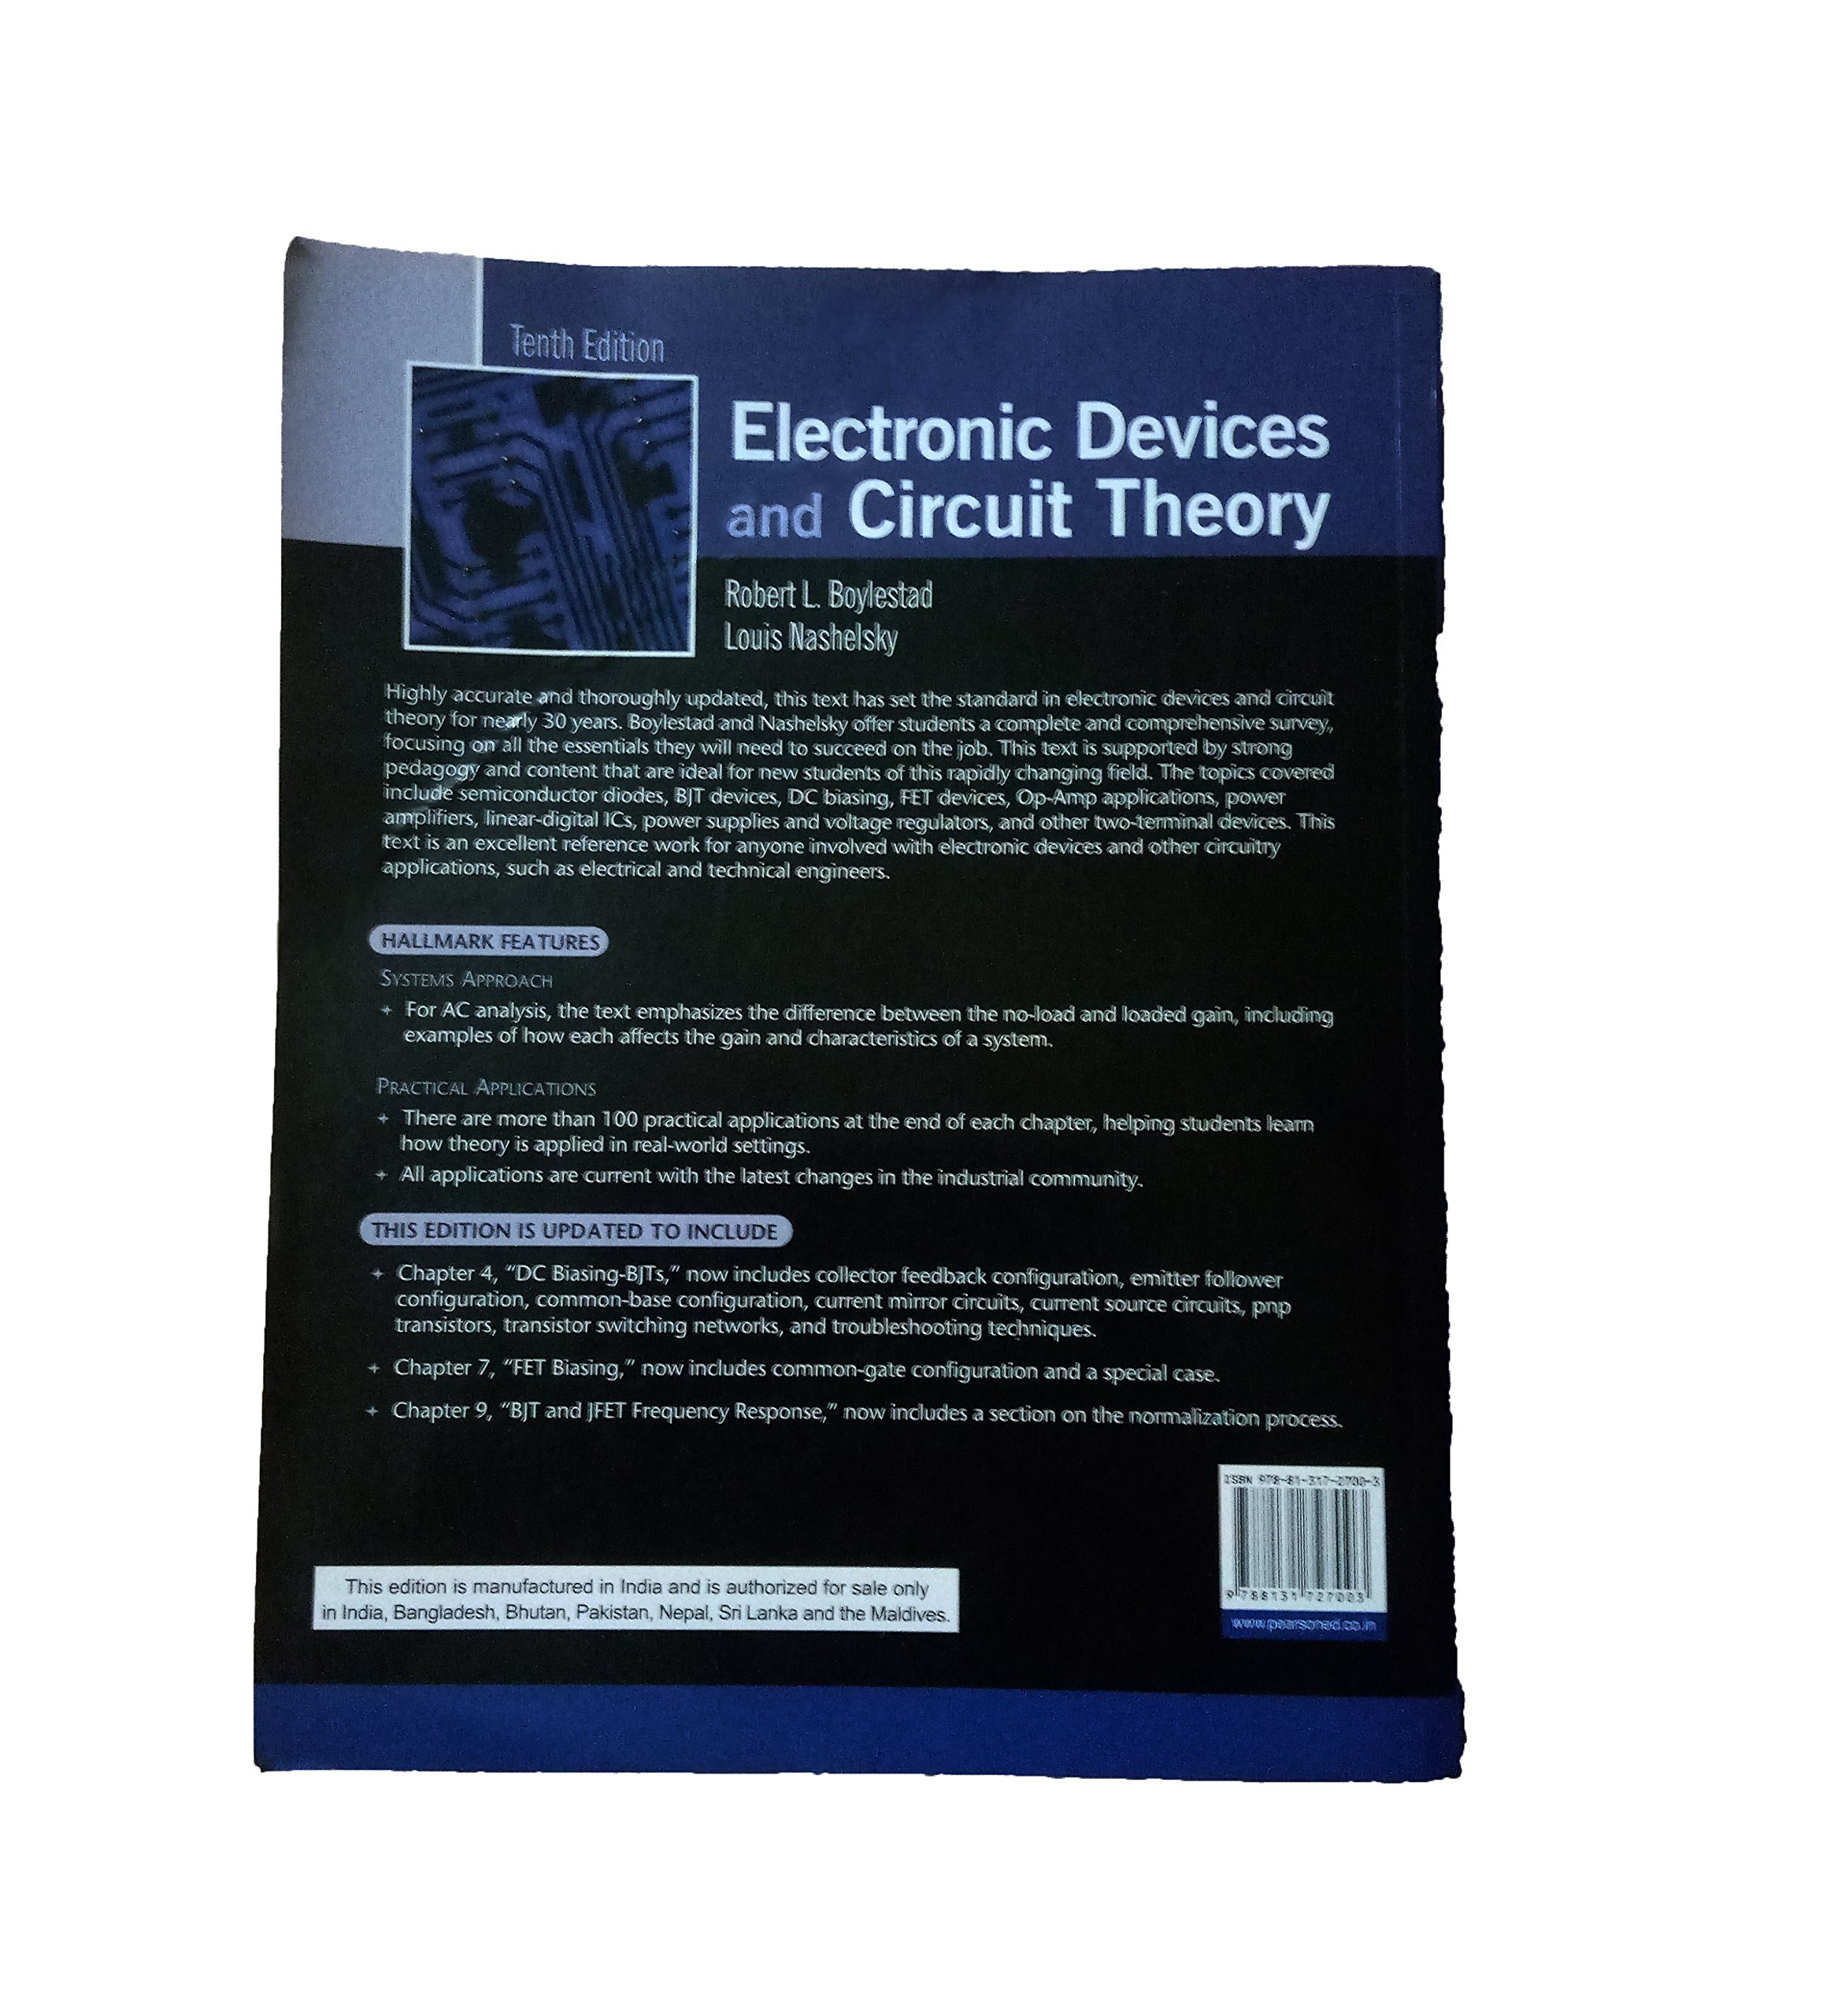 Buy Integrated Electronics Analog And Digital Circuits Systems 2 Electronic Devices Circuit Theory Book Online At Low Prices In India Reviews Ratings